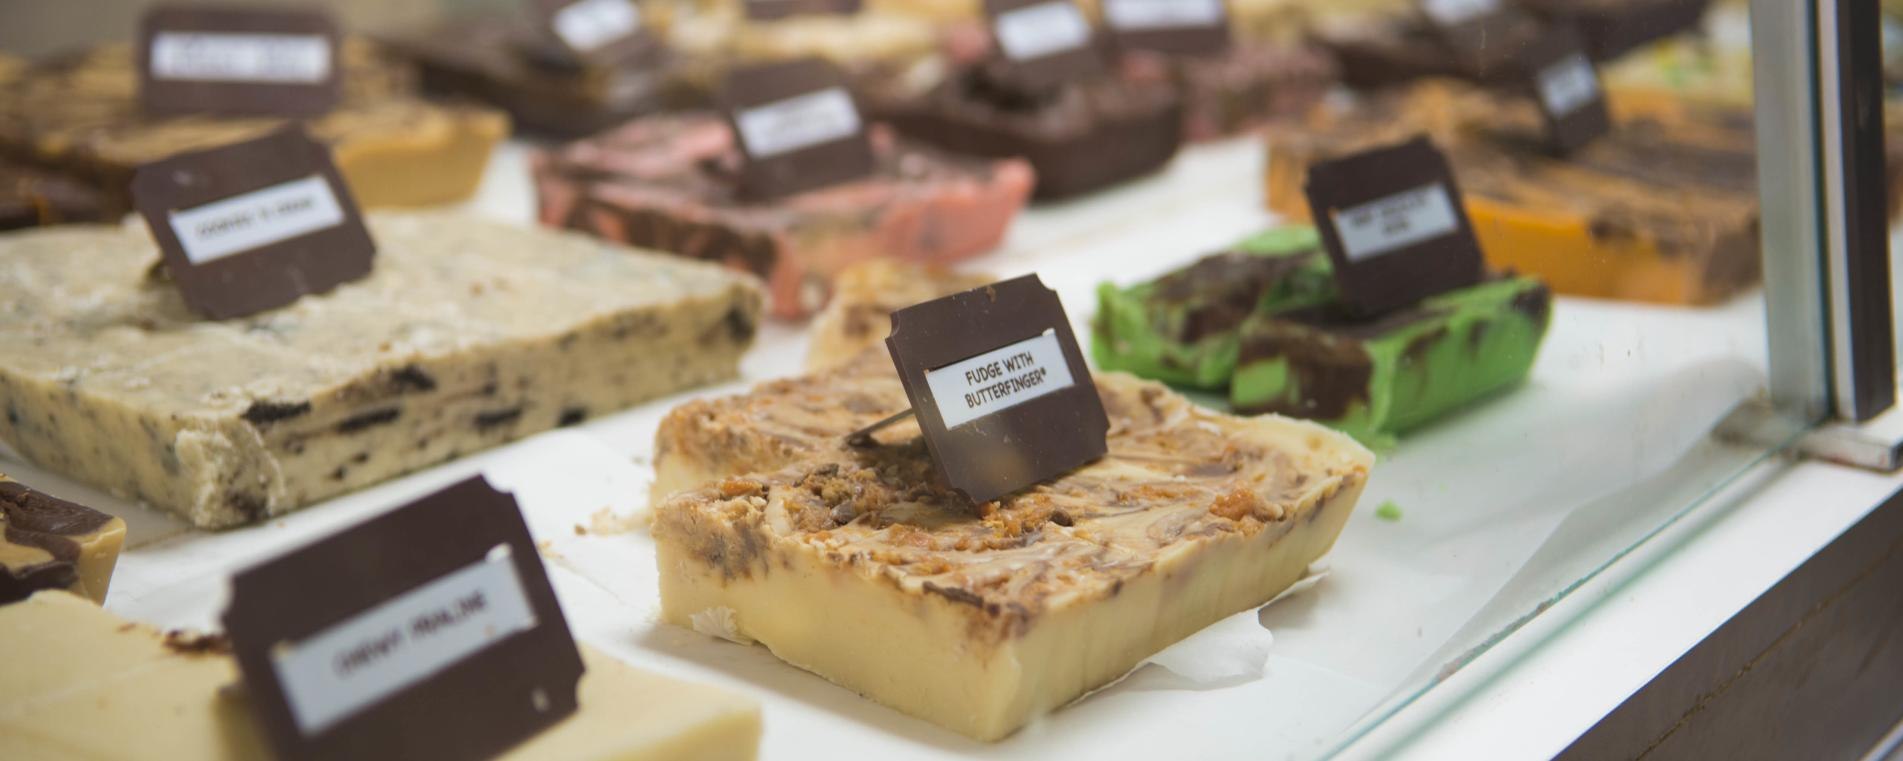 Take your pick of sweet treats in Estes Park